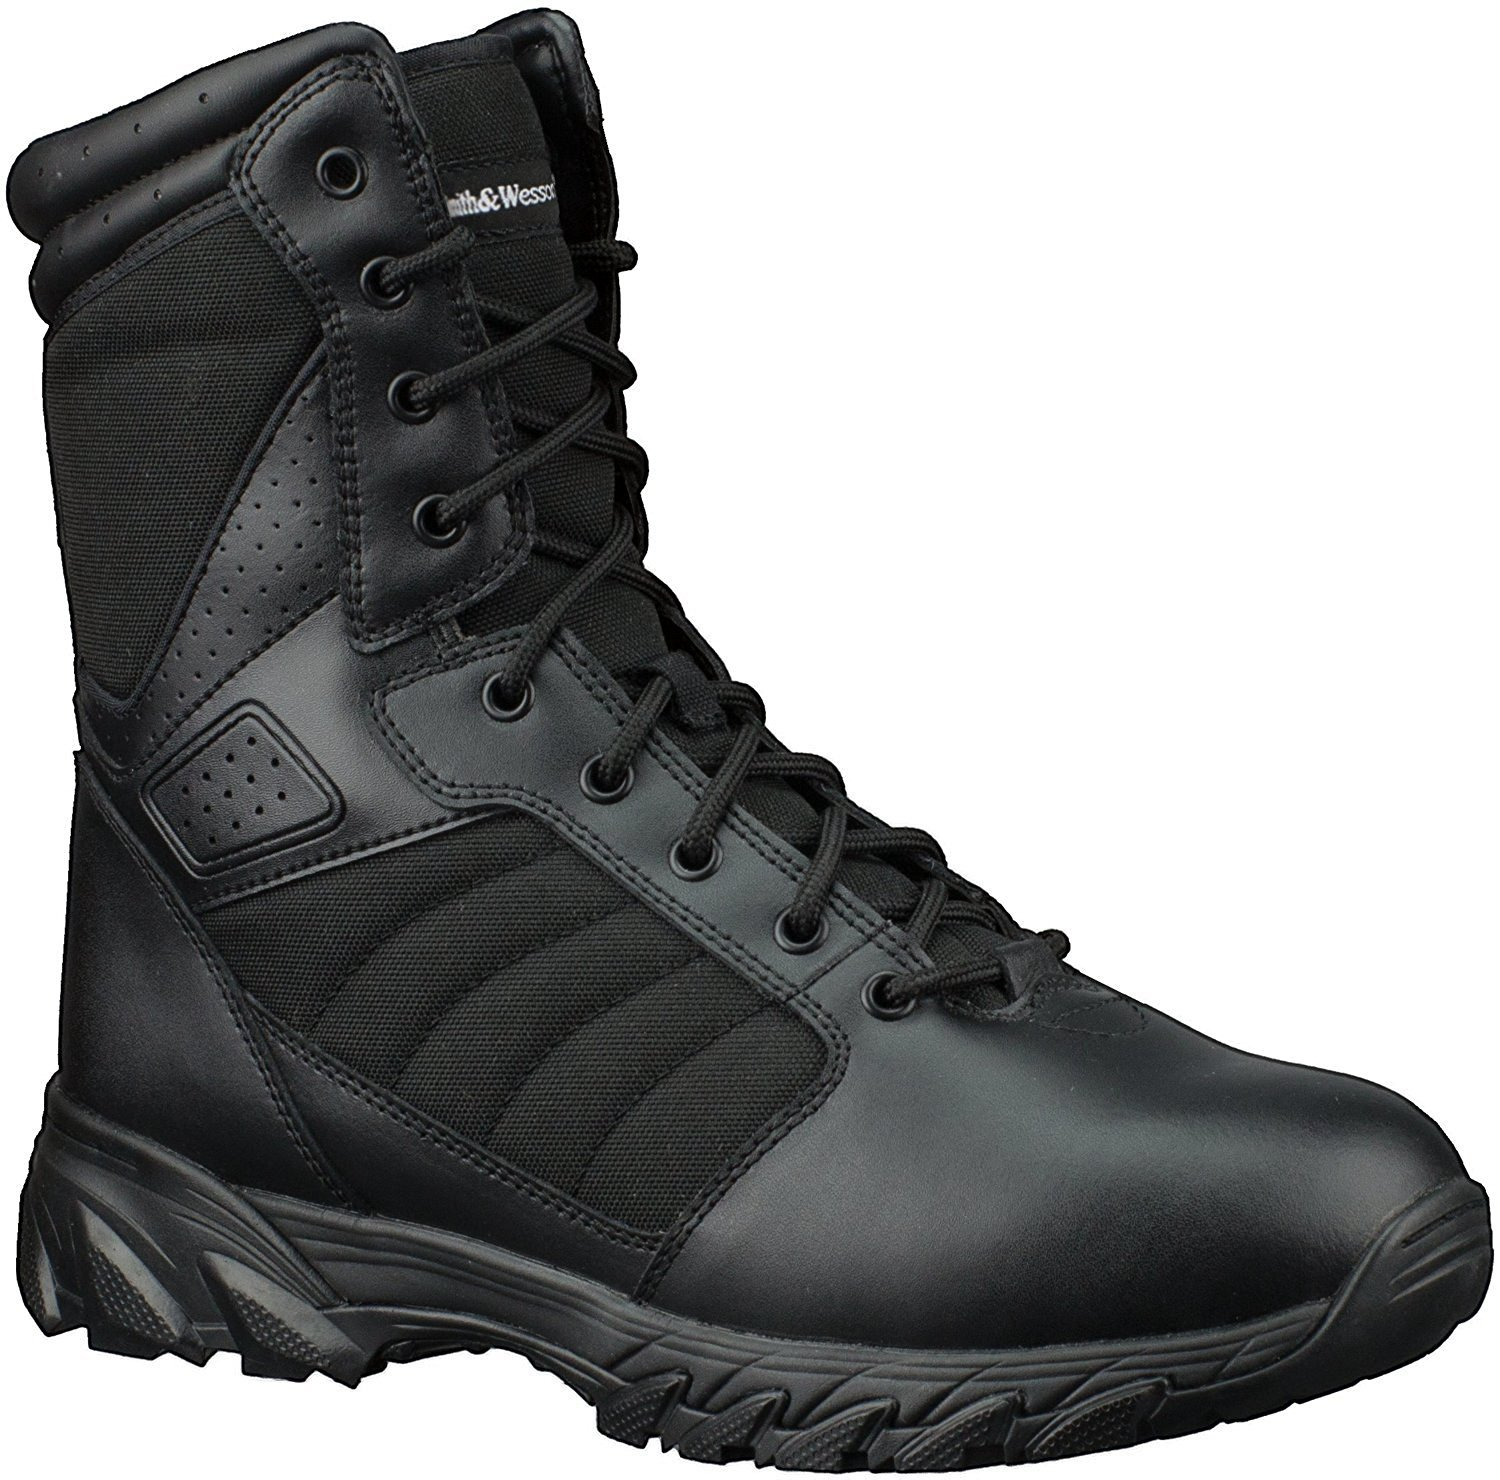 Smith & Wesson Men's Breach 2.0 Tactical Boots, Black, 12W by Smith & Wesson